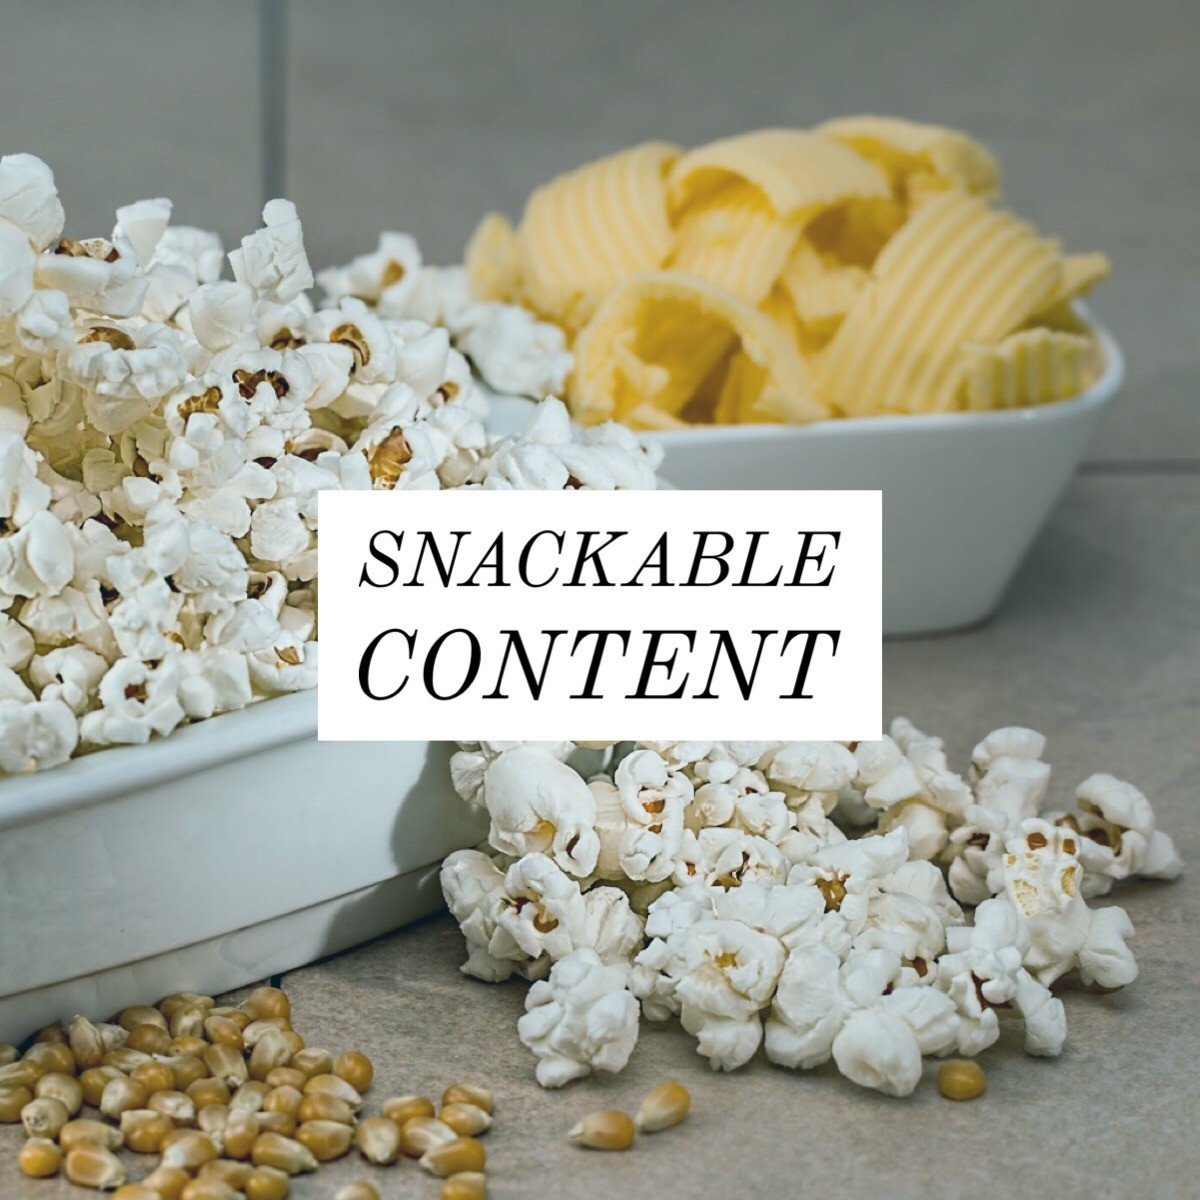 snackable-content